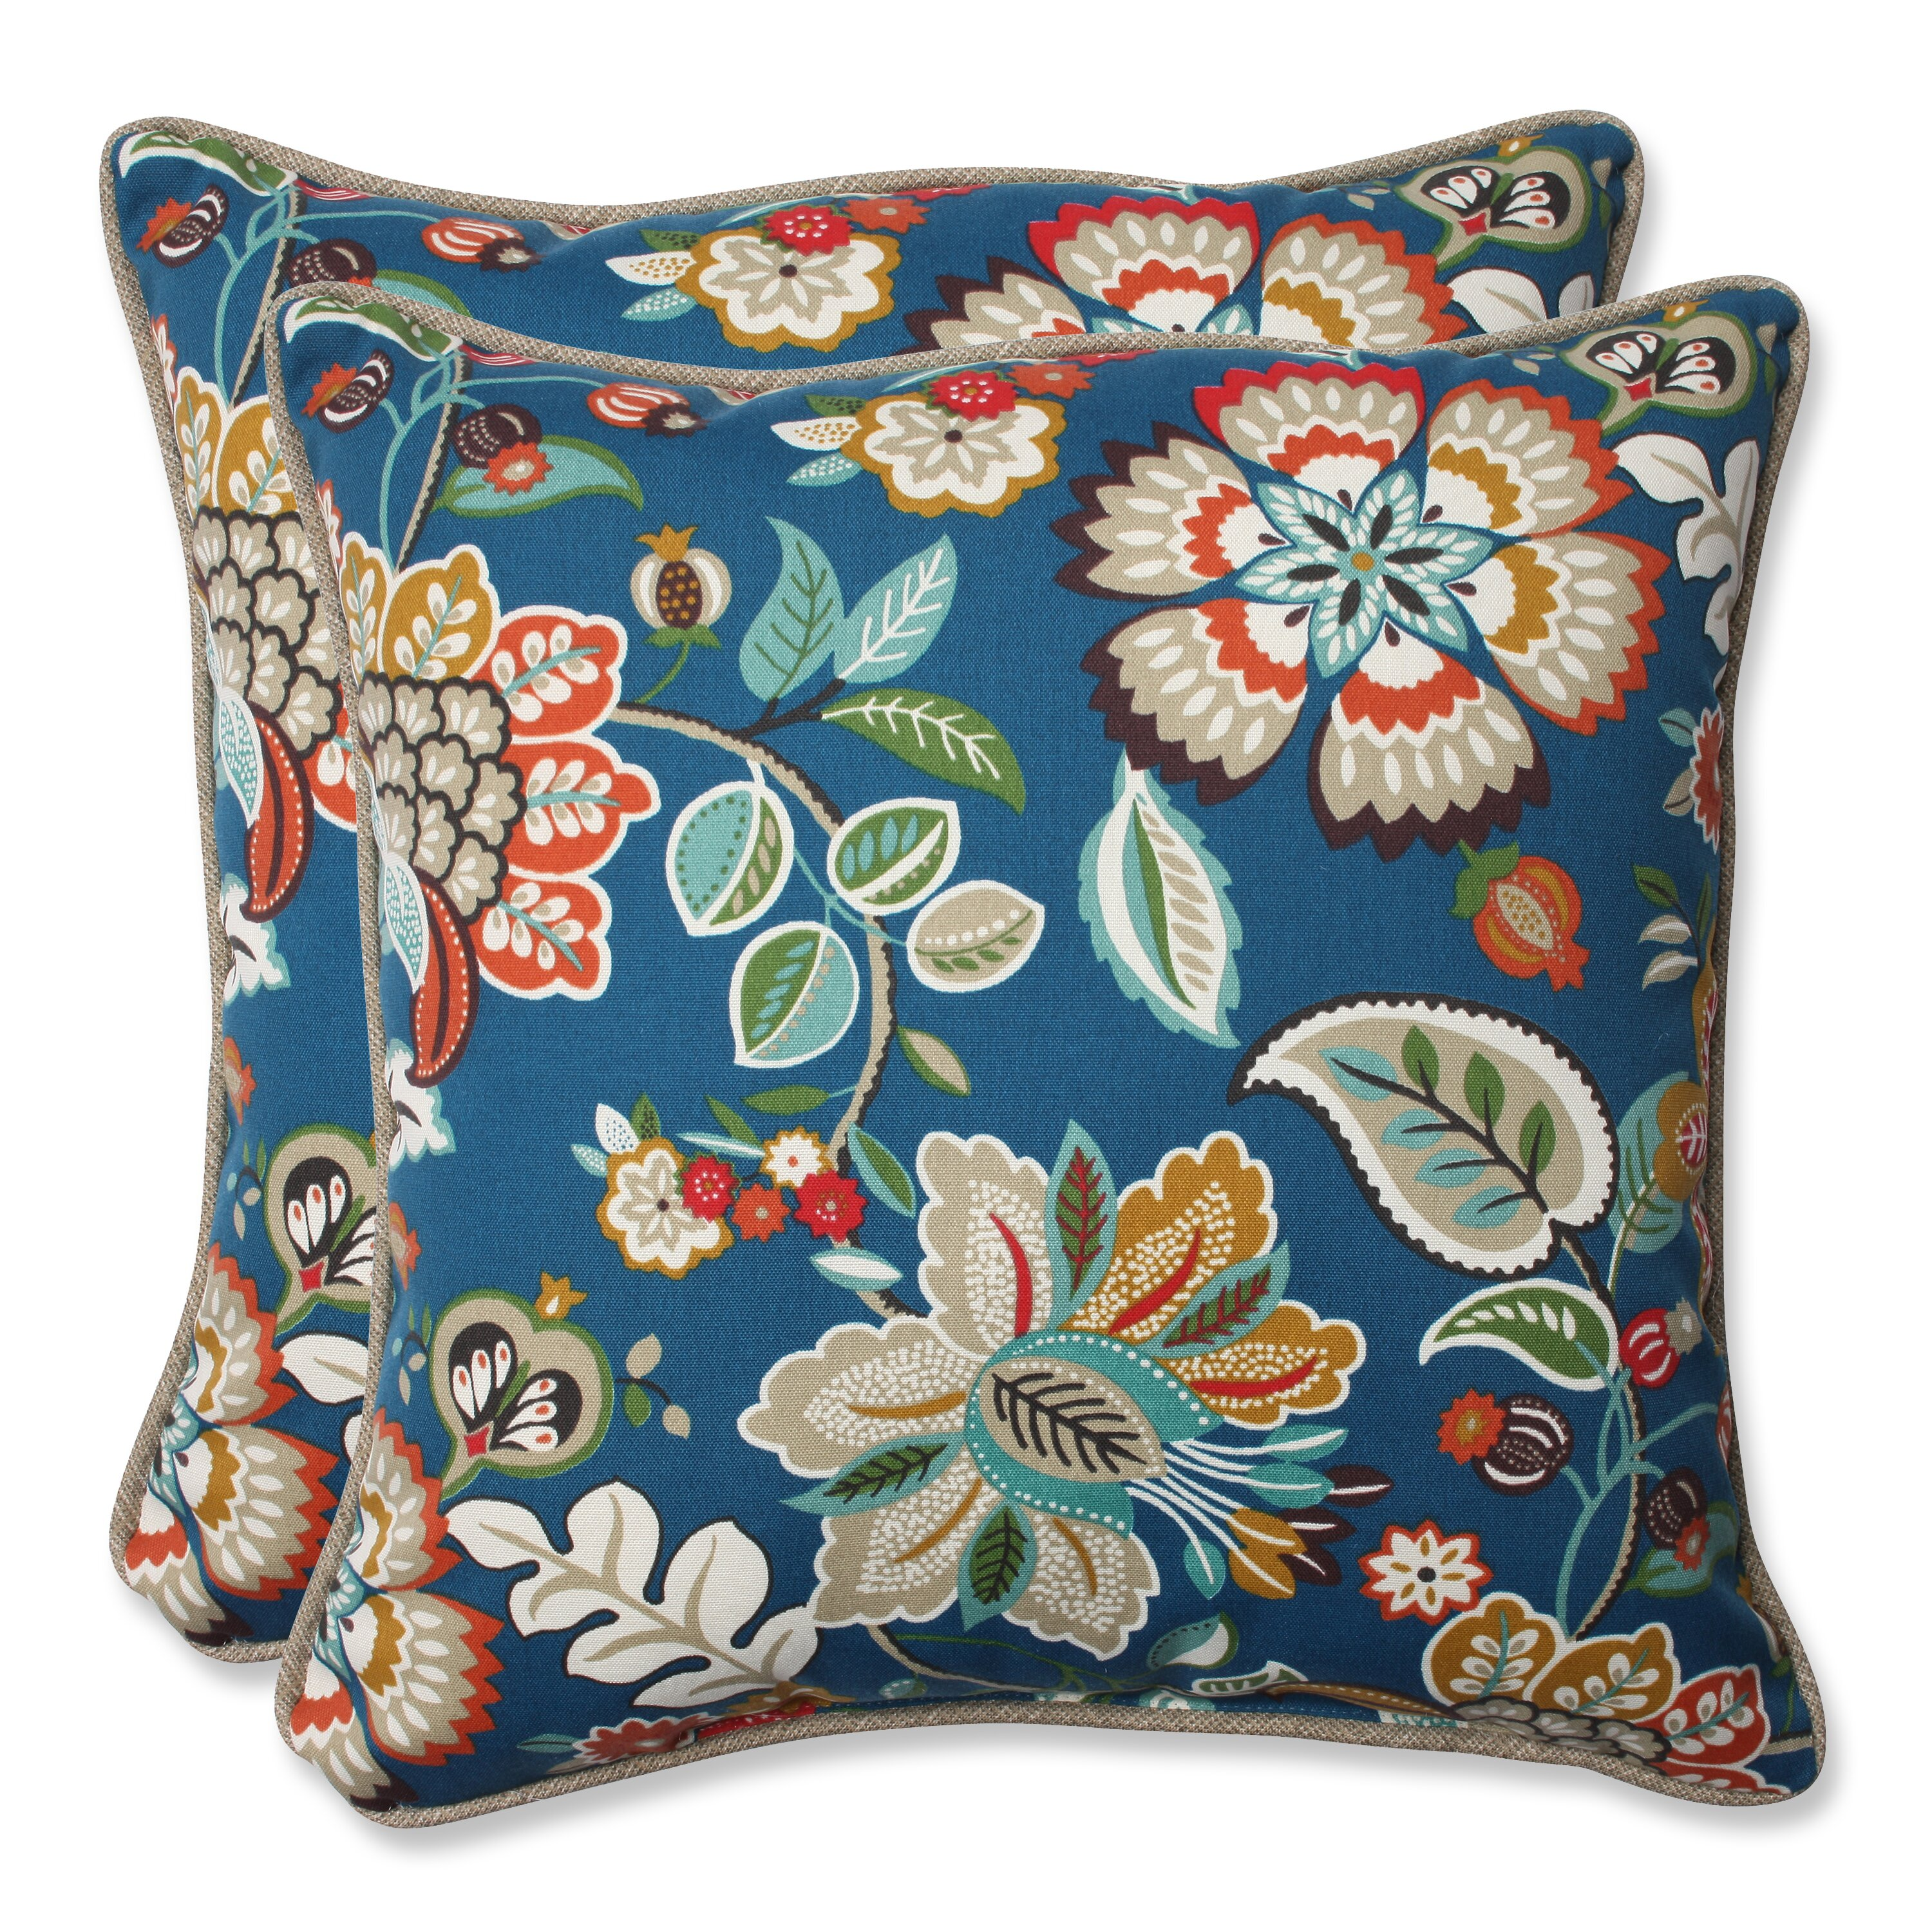 Throw Pillows In Abuja : Pillow Perfect Telfair Peacock Indoor/Outdoor Throw Pillow & Reviews Wayfair